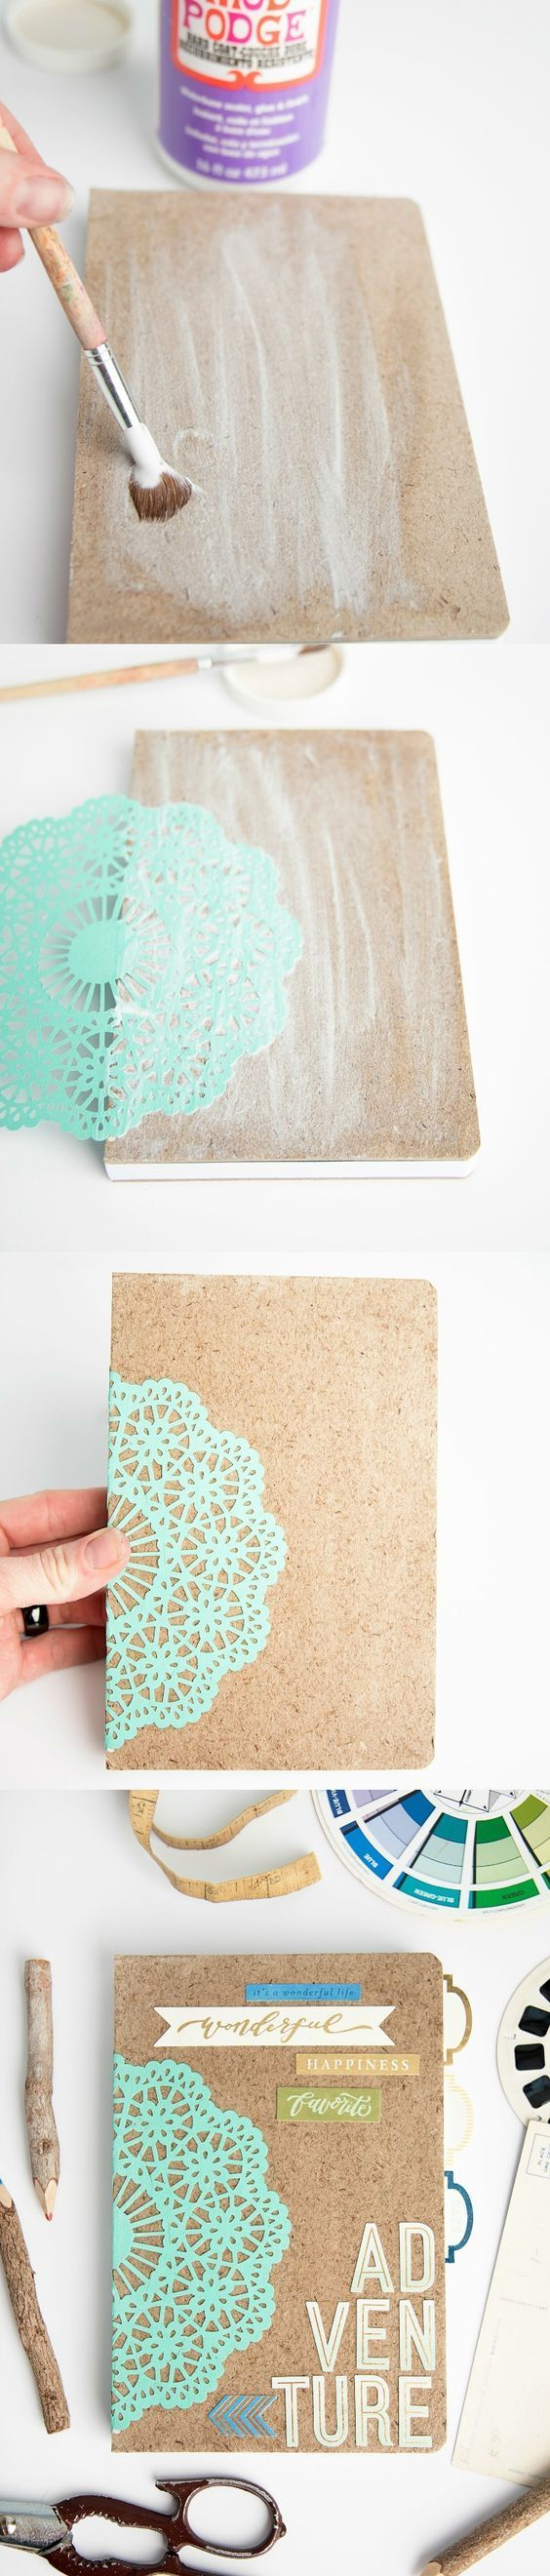 This adventure notebook tutorial is the perfect DIY gift idea for everyone from hostesses to teachers to kids! So simple to personalize the cover with Mod Podge. Great for school or for a planner!